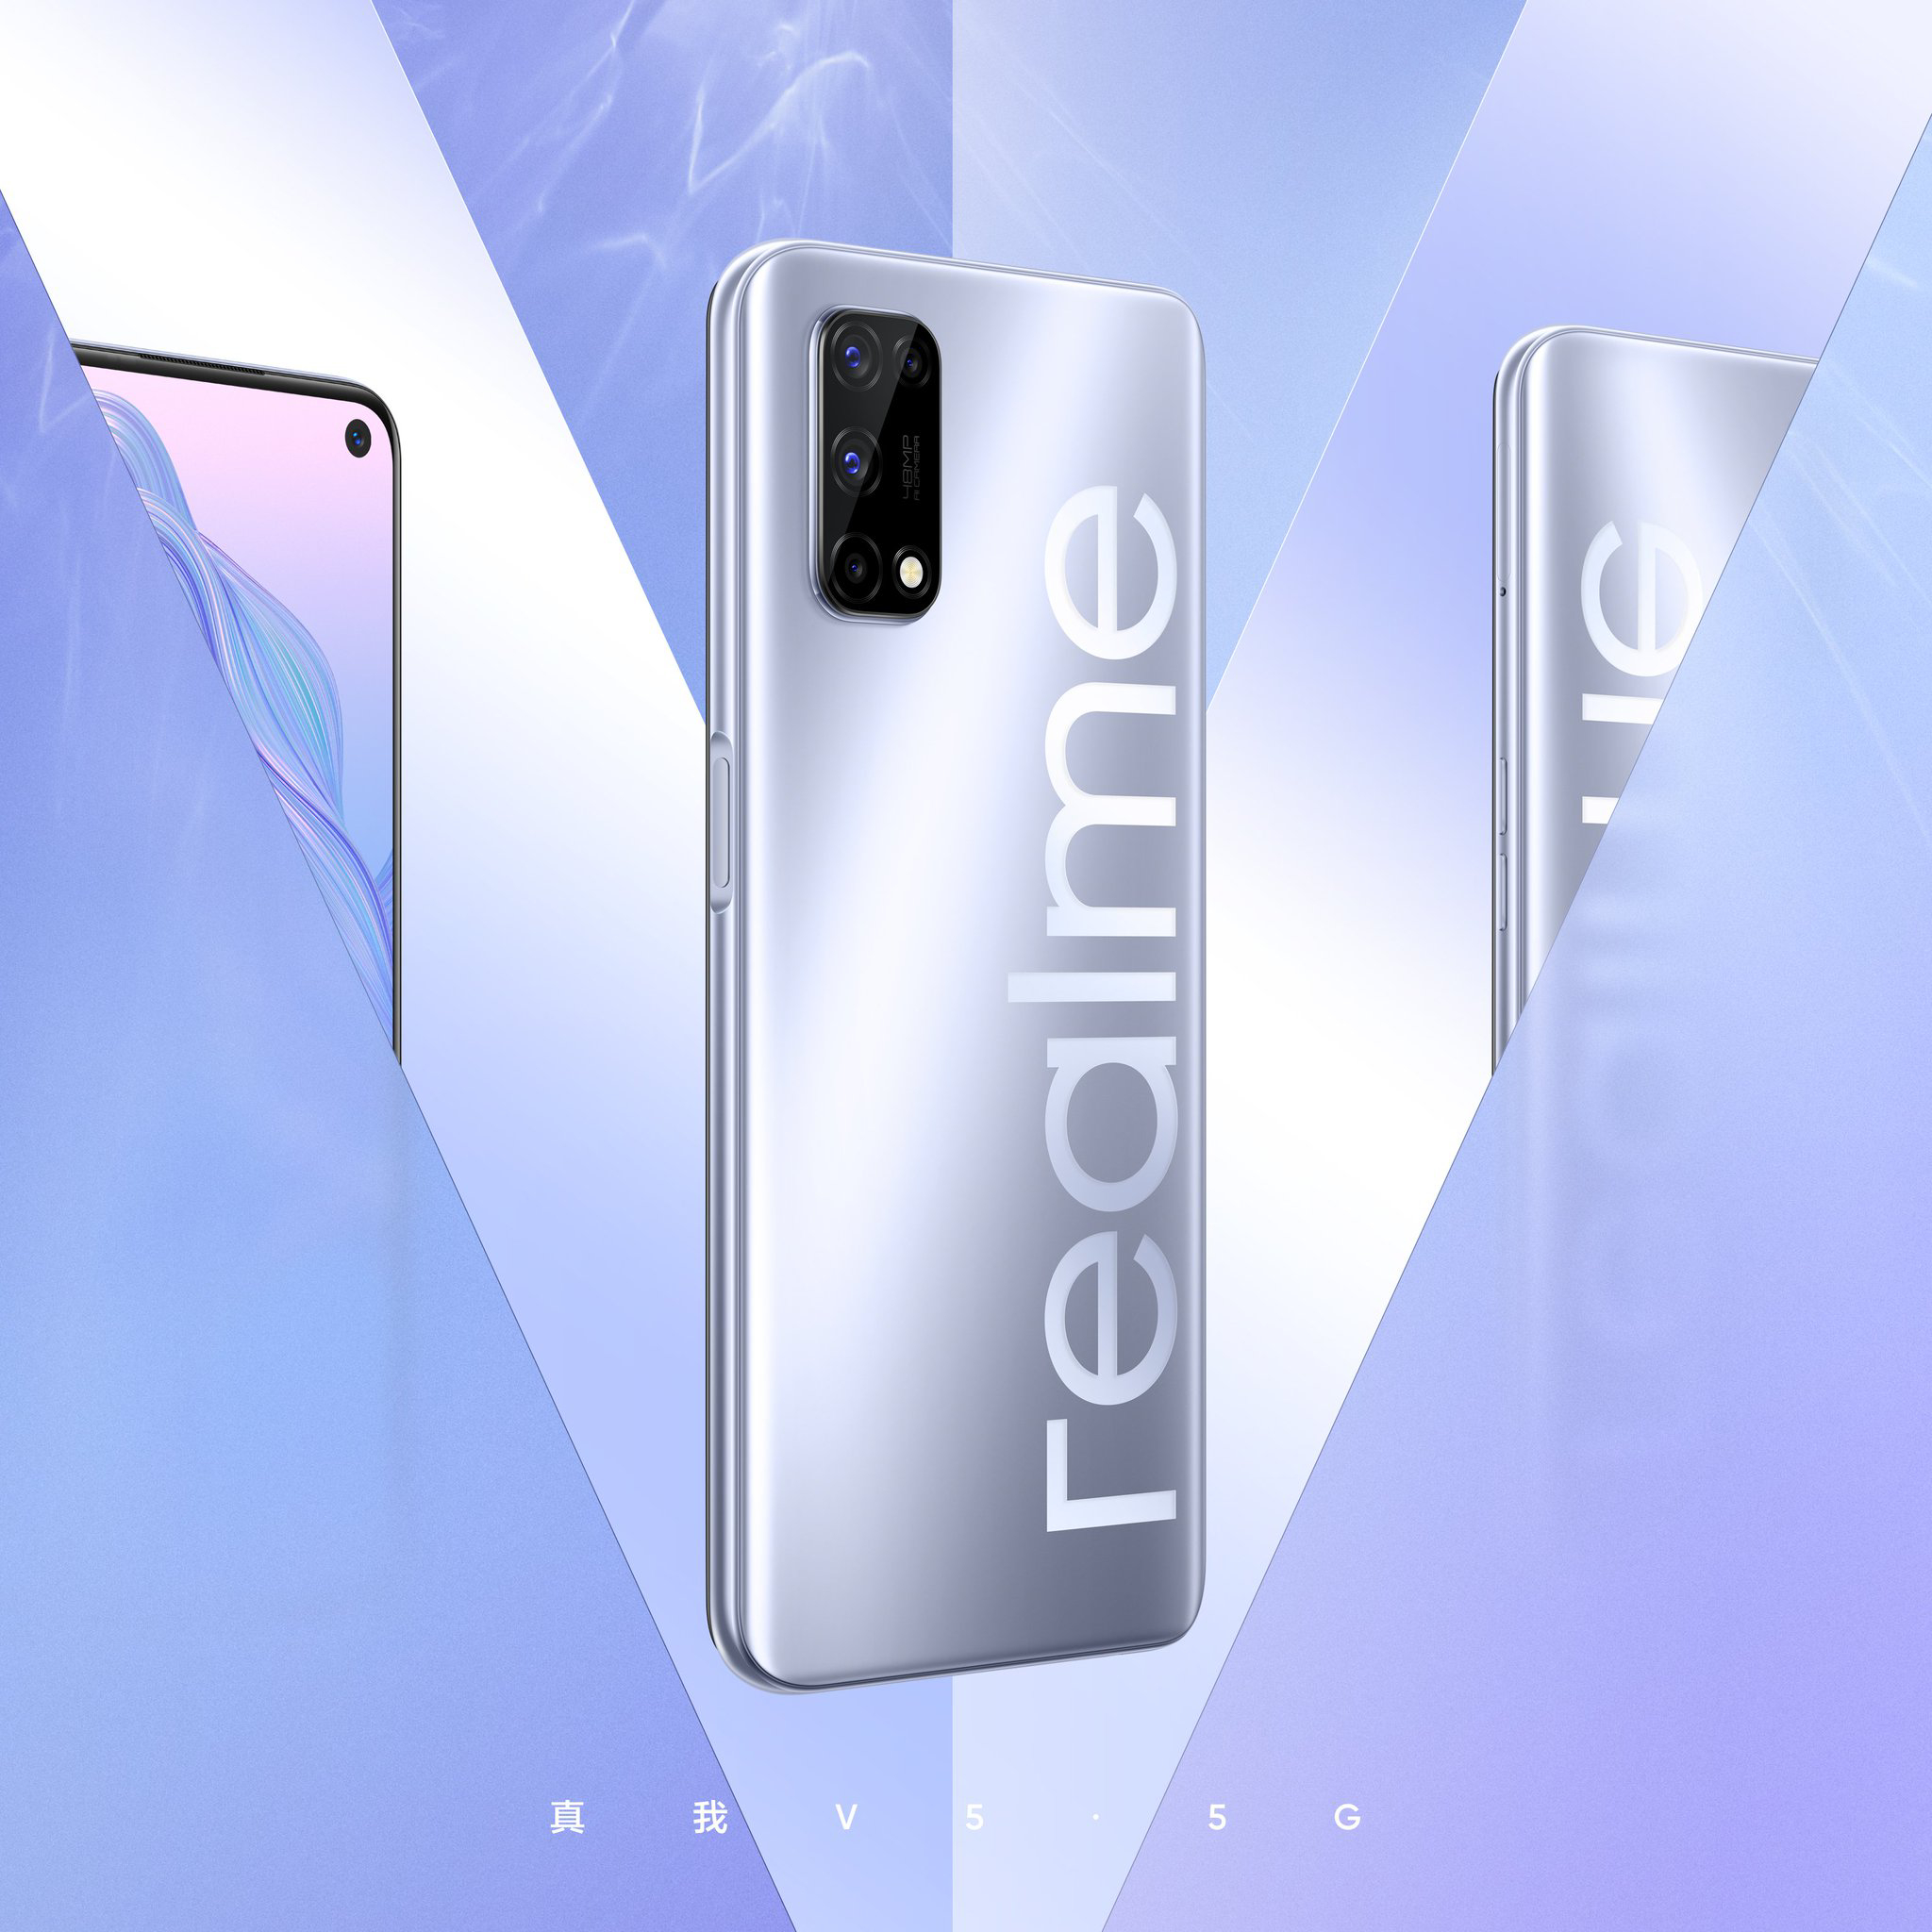 Realme V5 is a new phone with new design Leaked